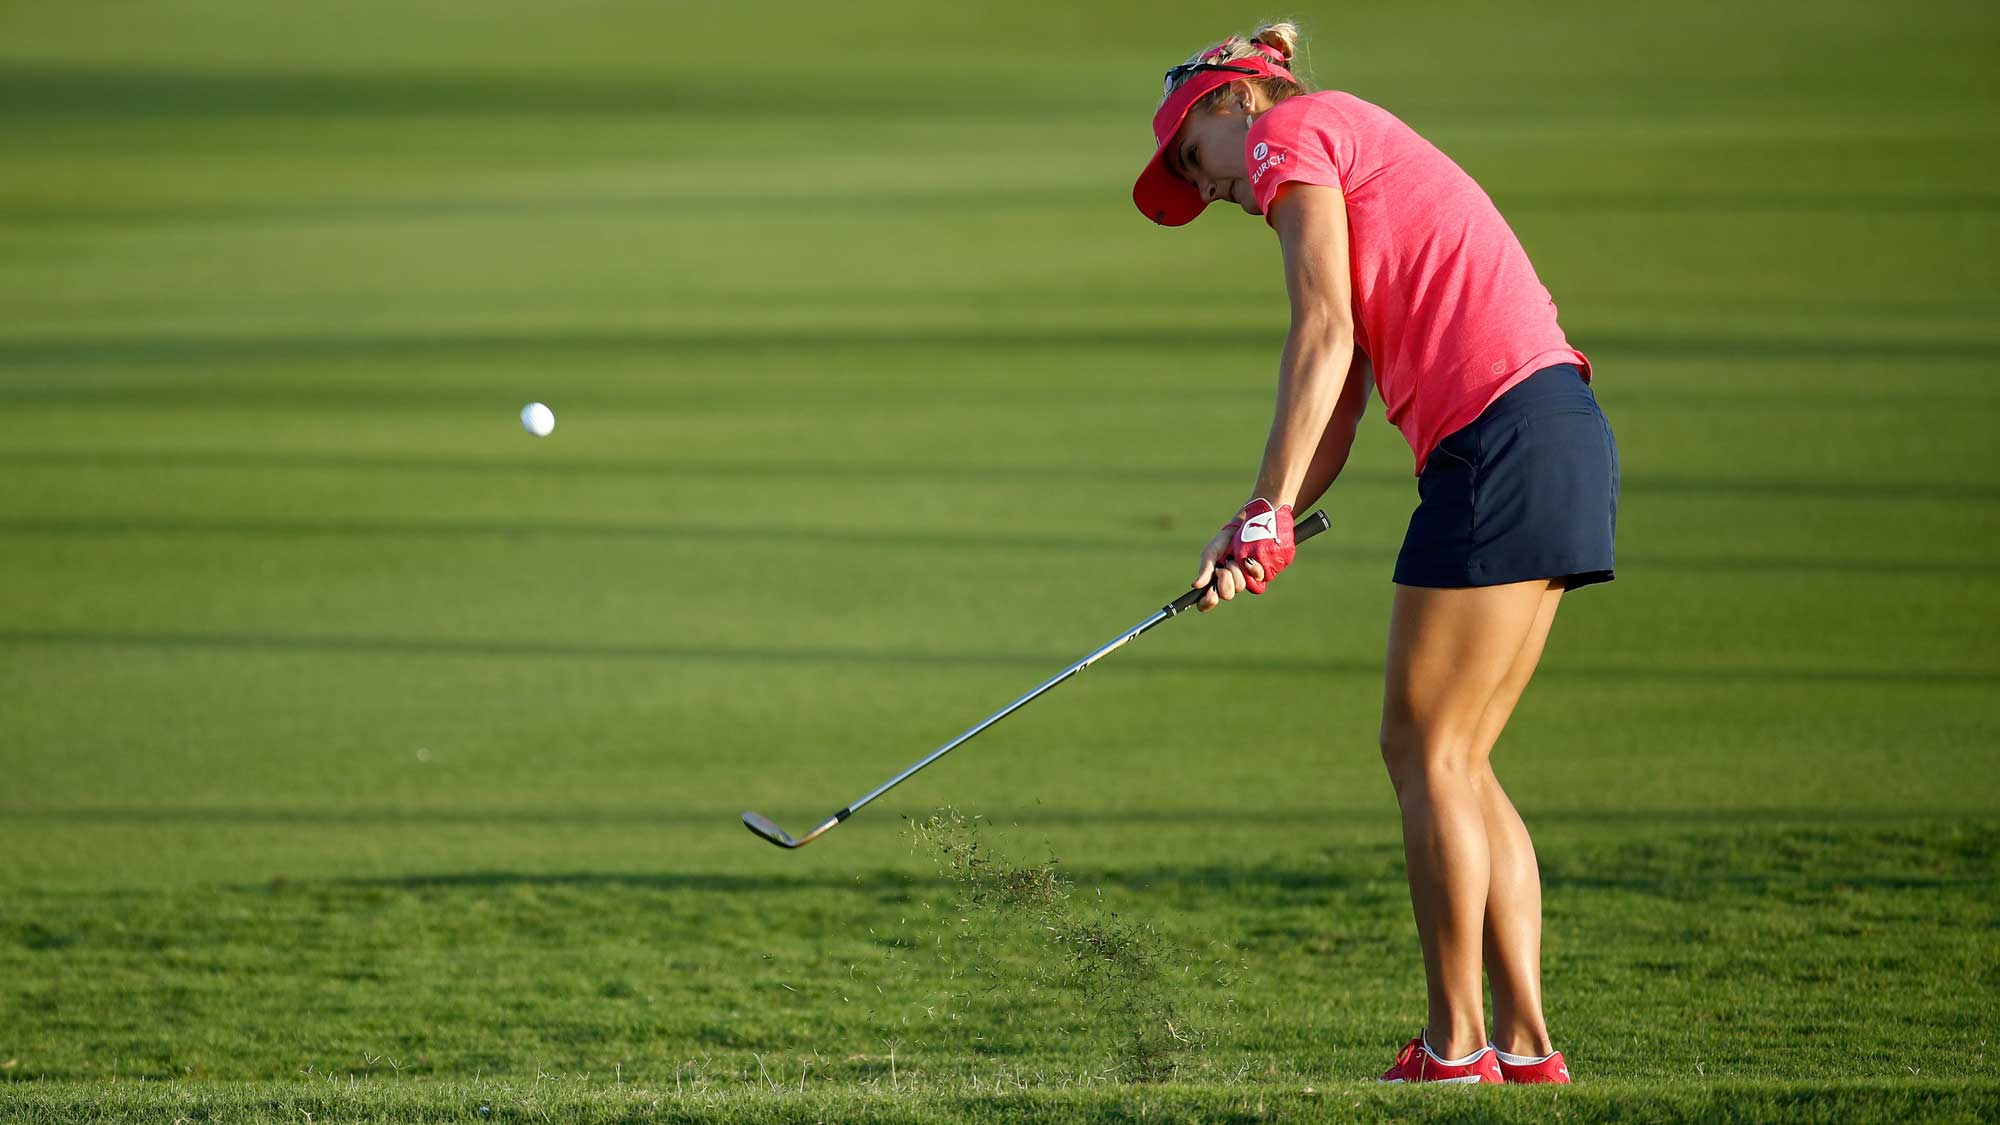 Lexi Thompson hits her third shot on the 15th hole during the second round of the Pure Silk Bahamas LPGA Classic